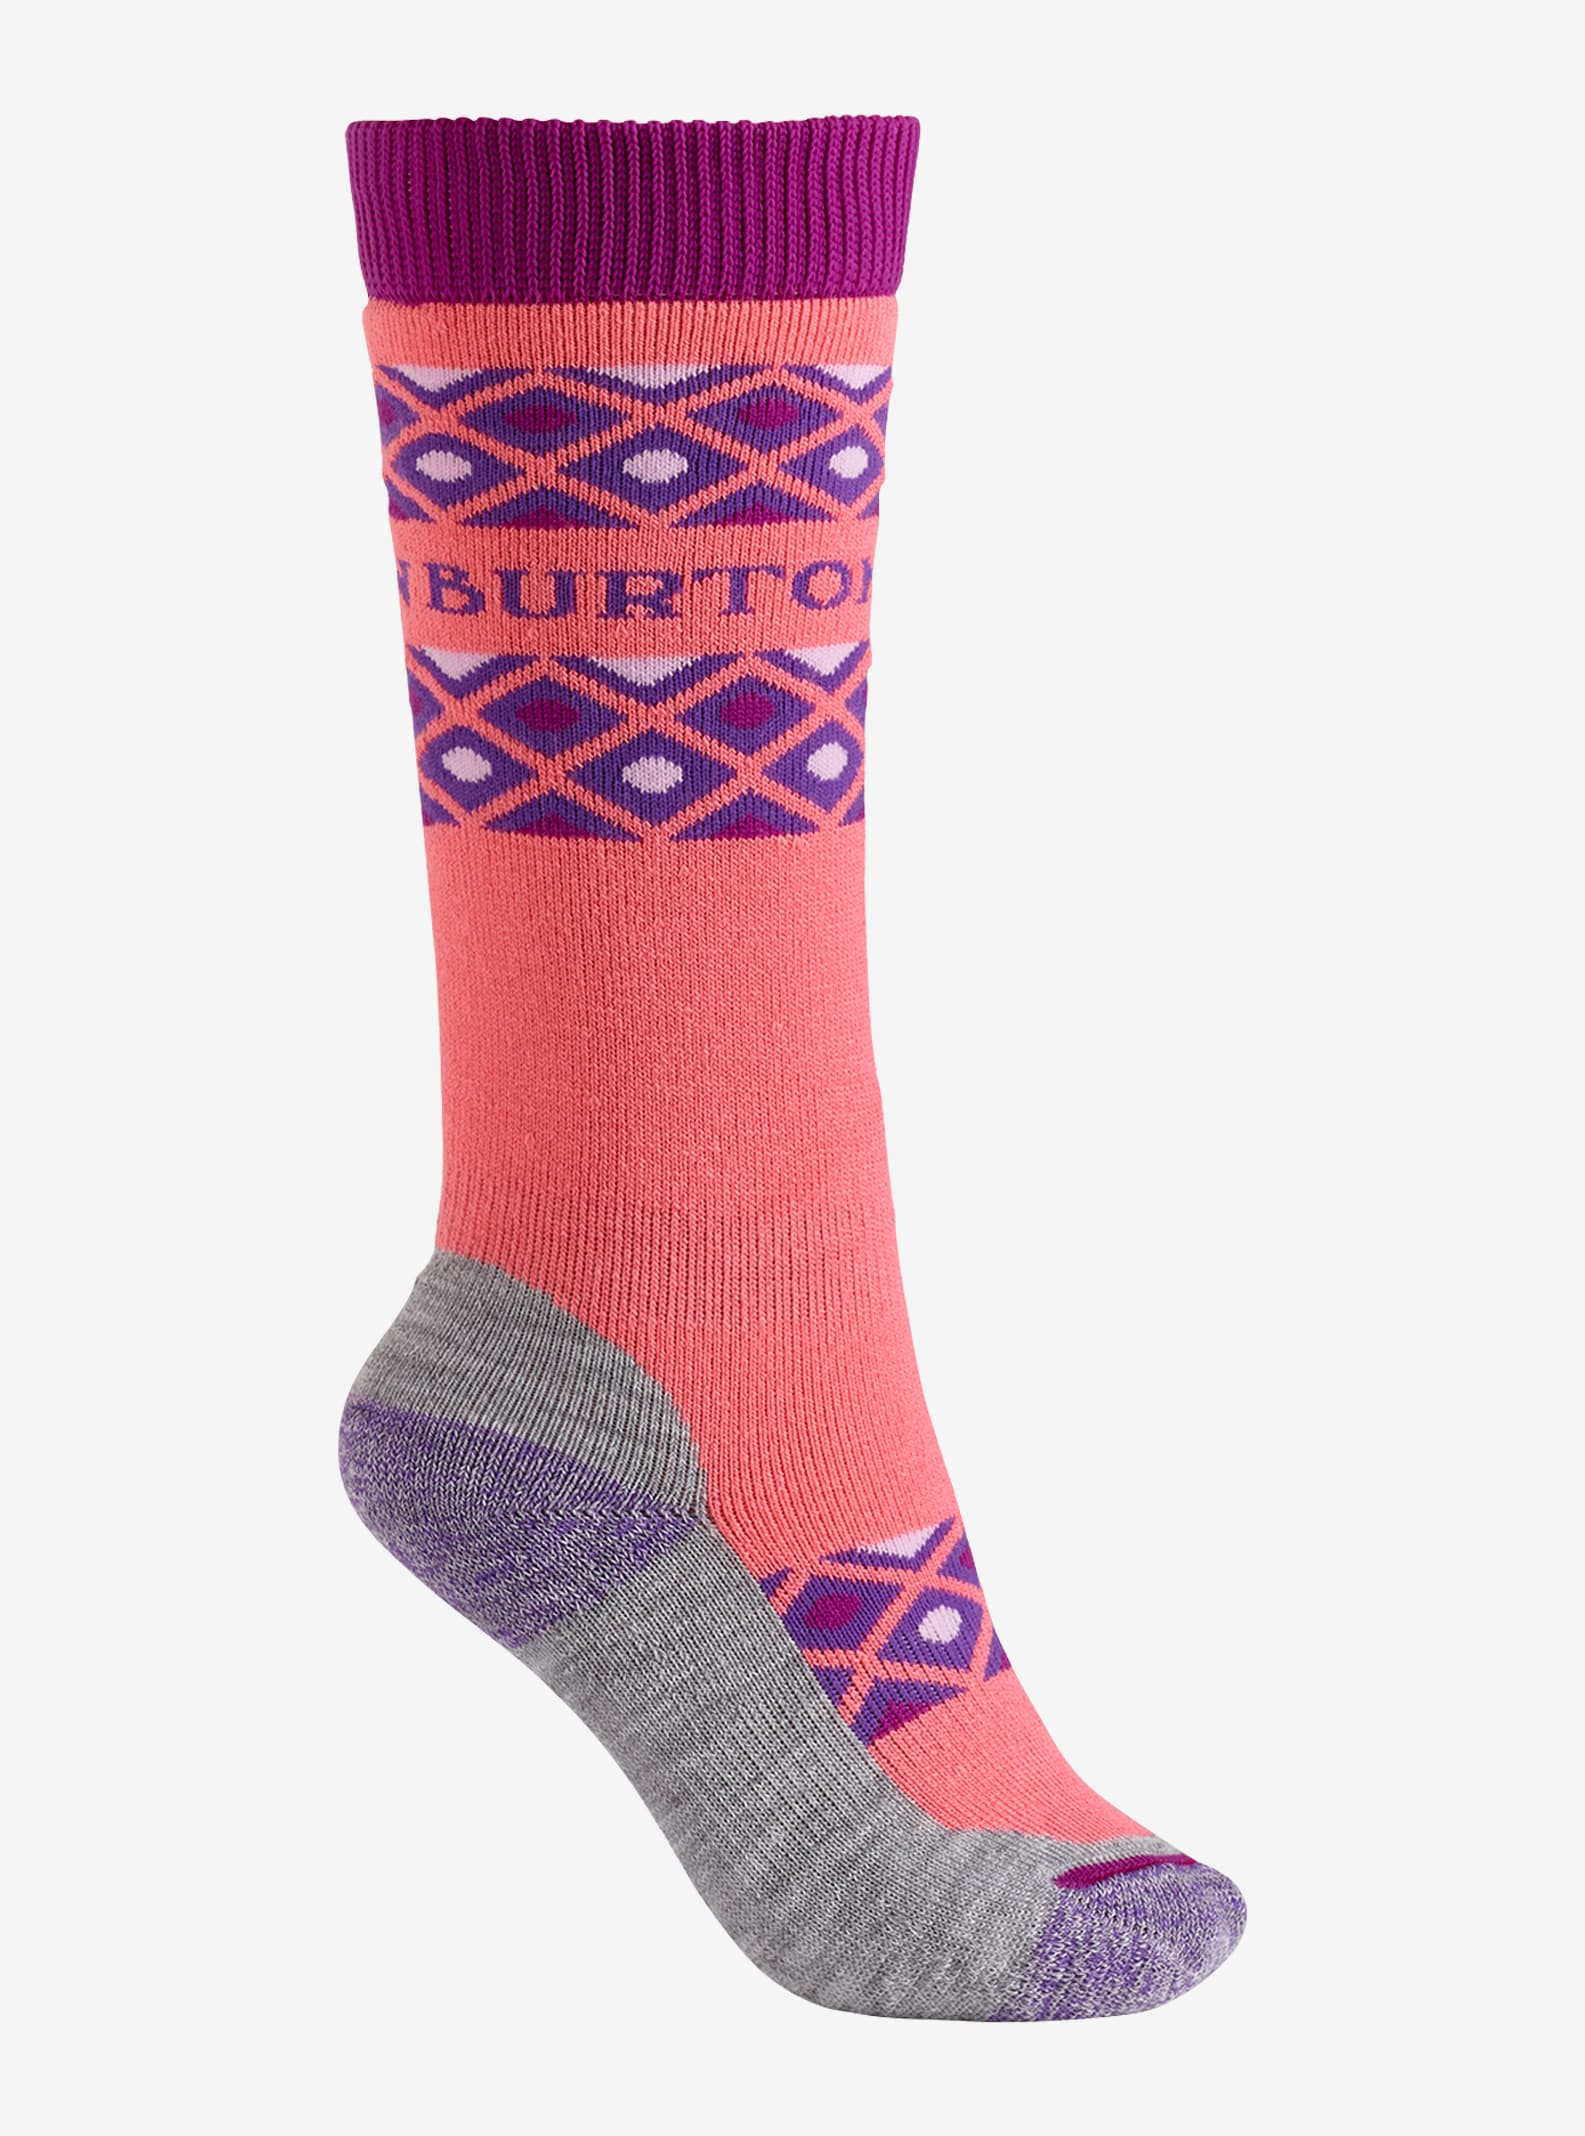 Girls' Burton Scout Sock shown in Georgia Peach